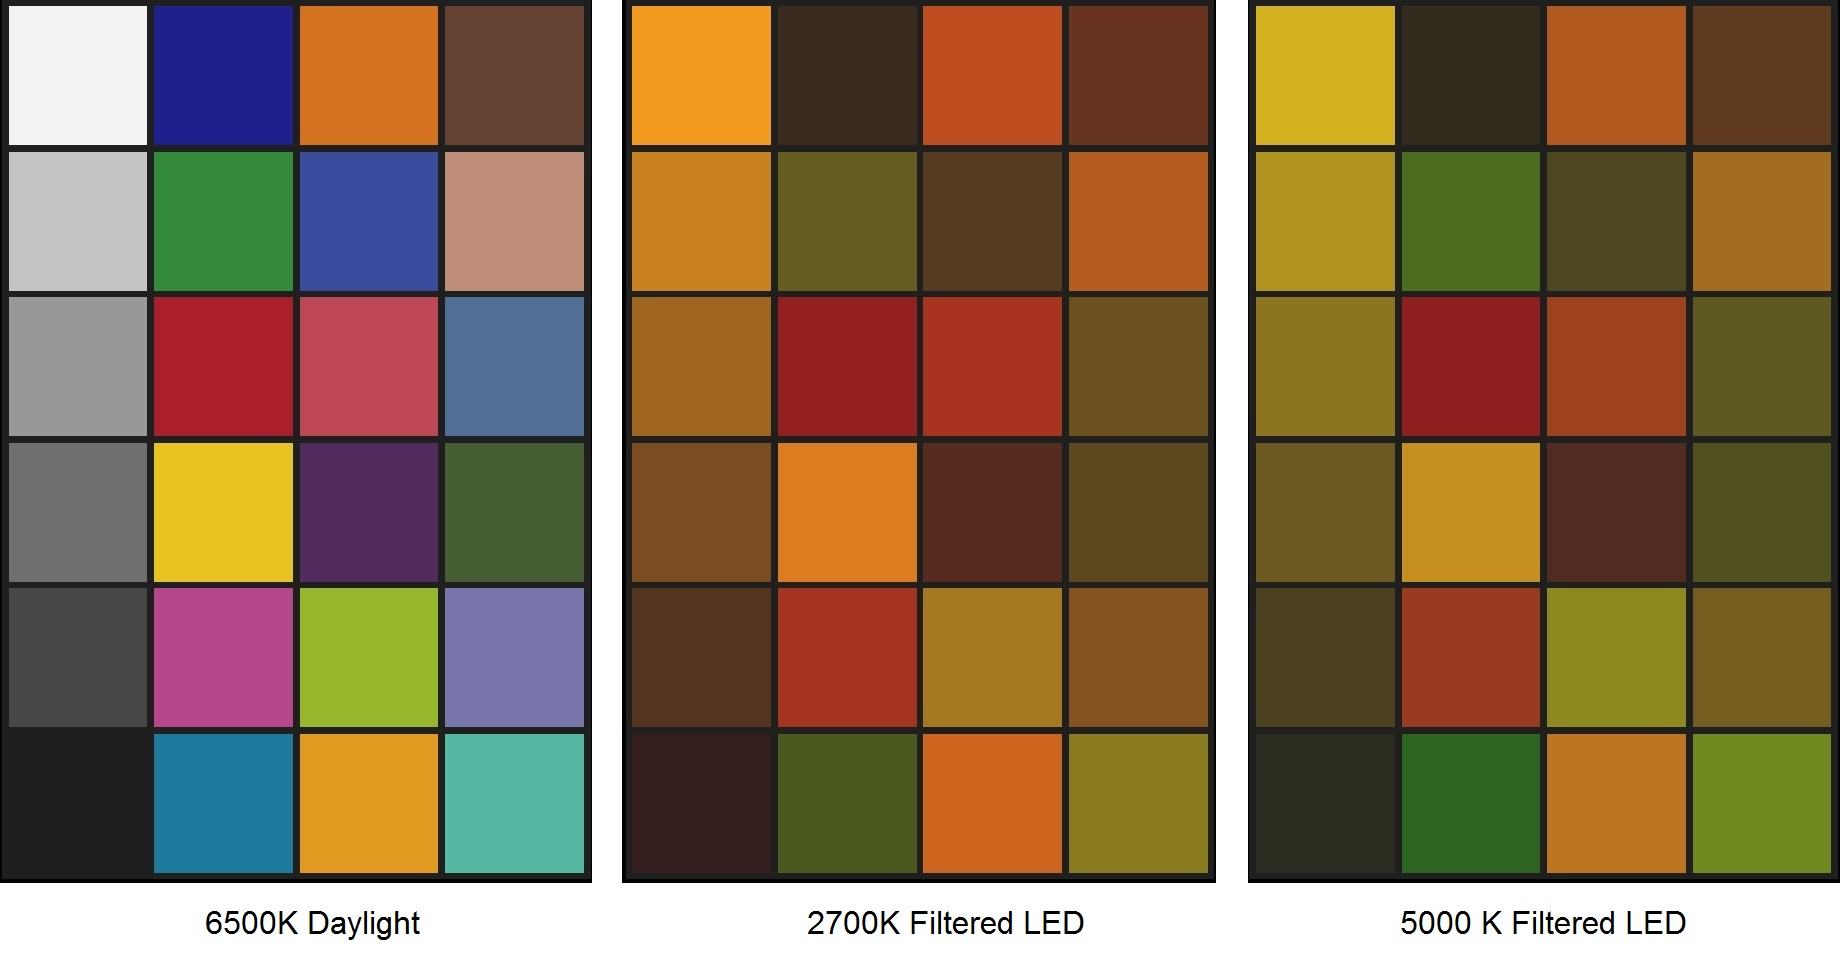 FIG. 5 – Filtered LED color shifts from 6500K daylight.